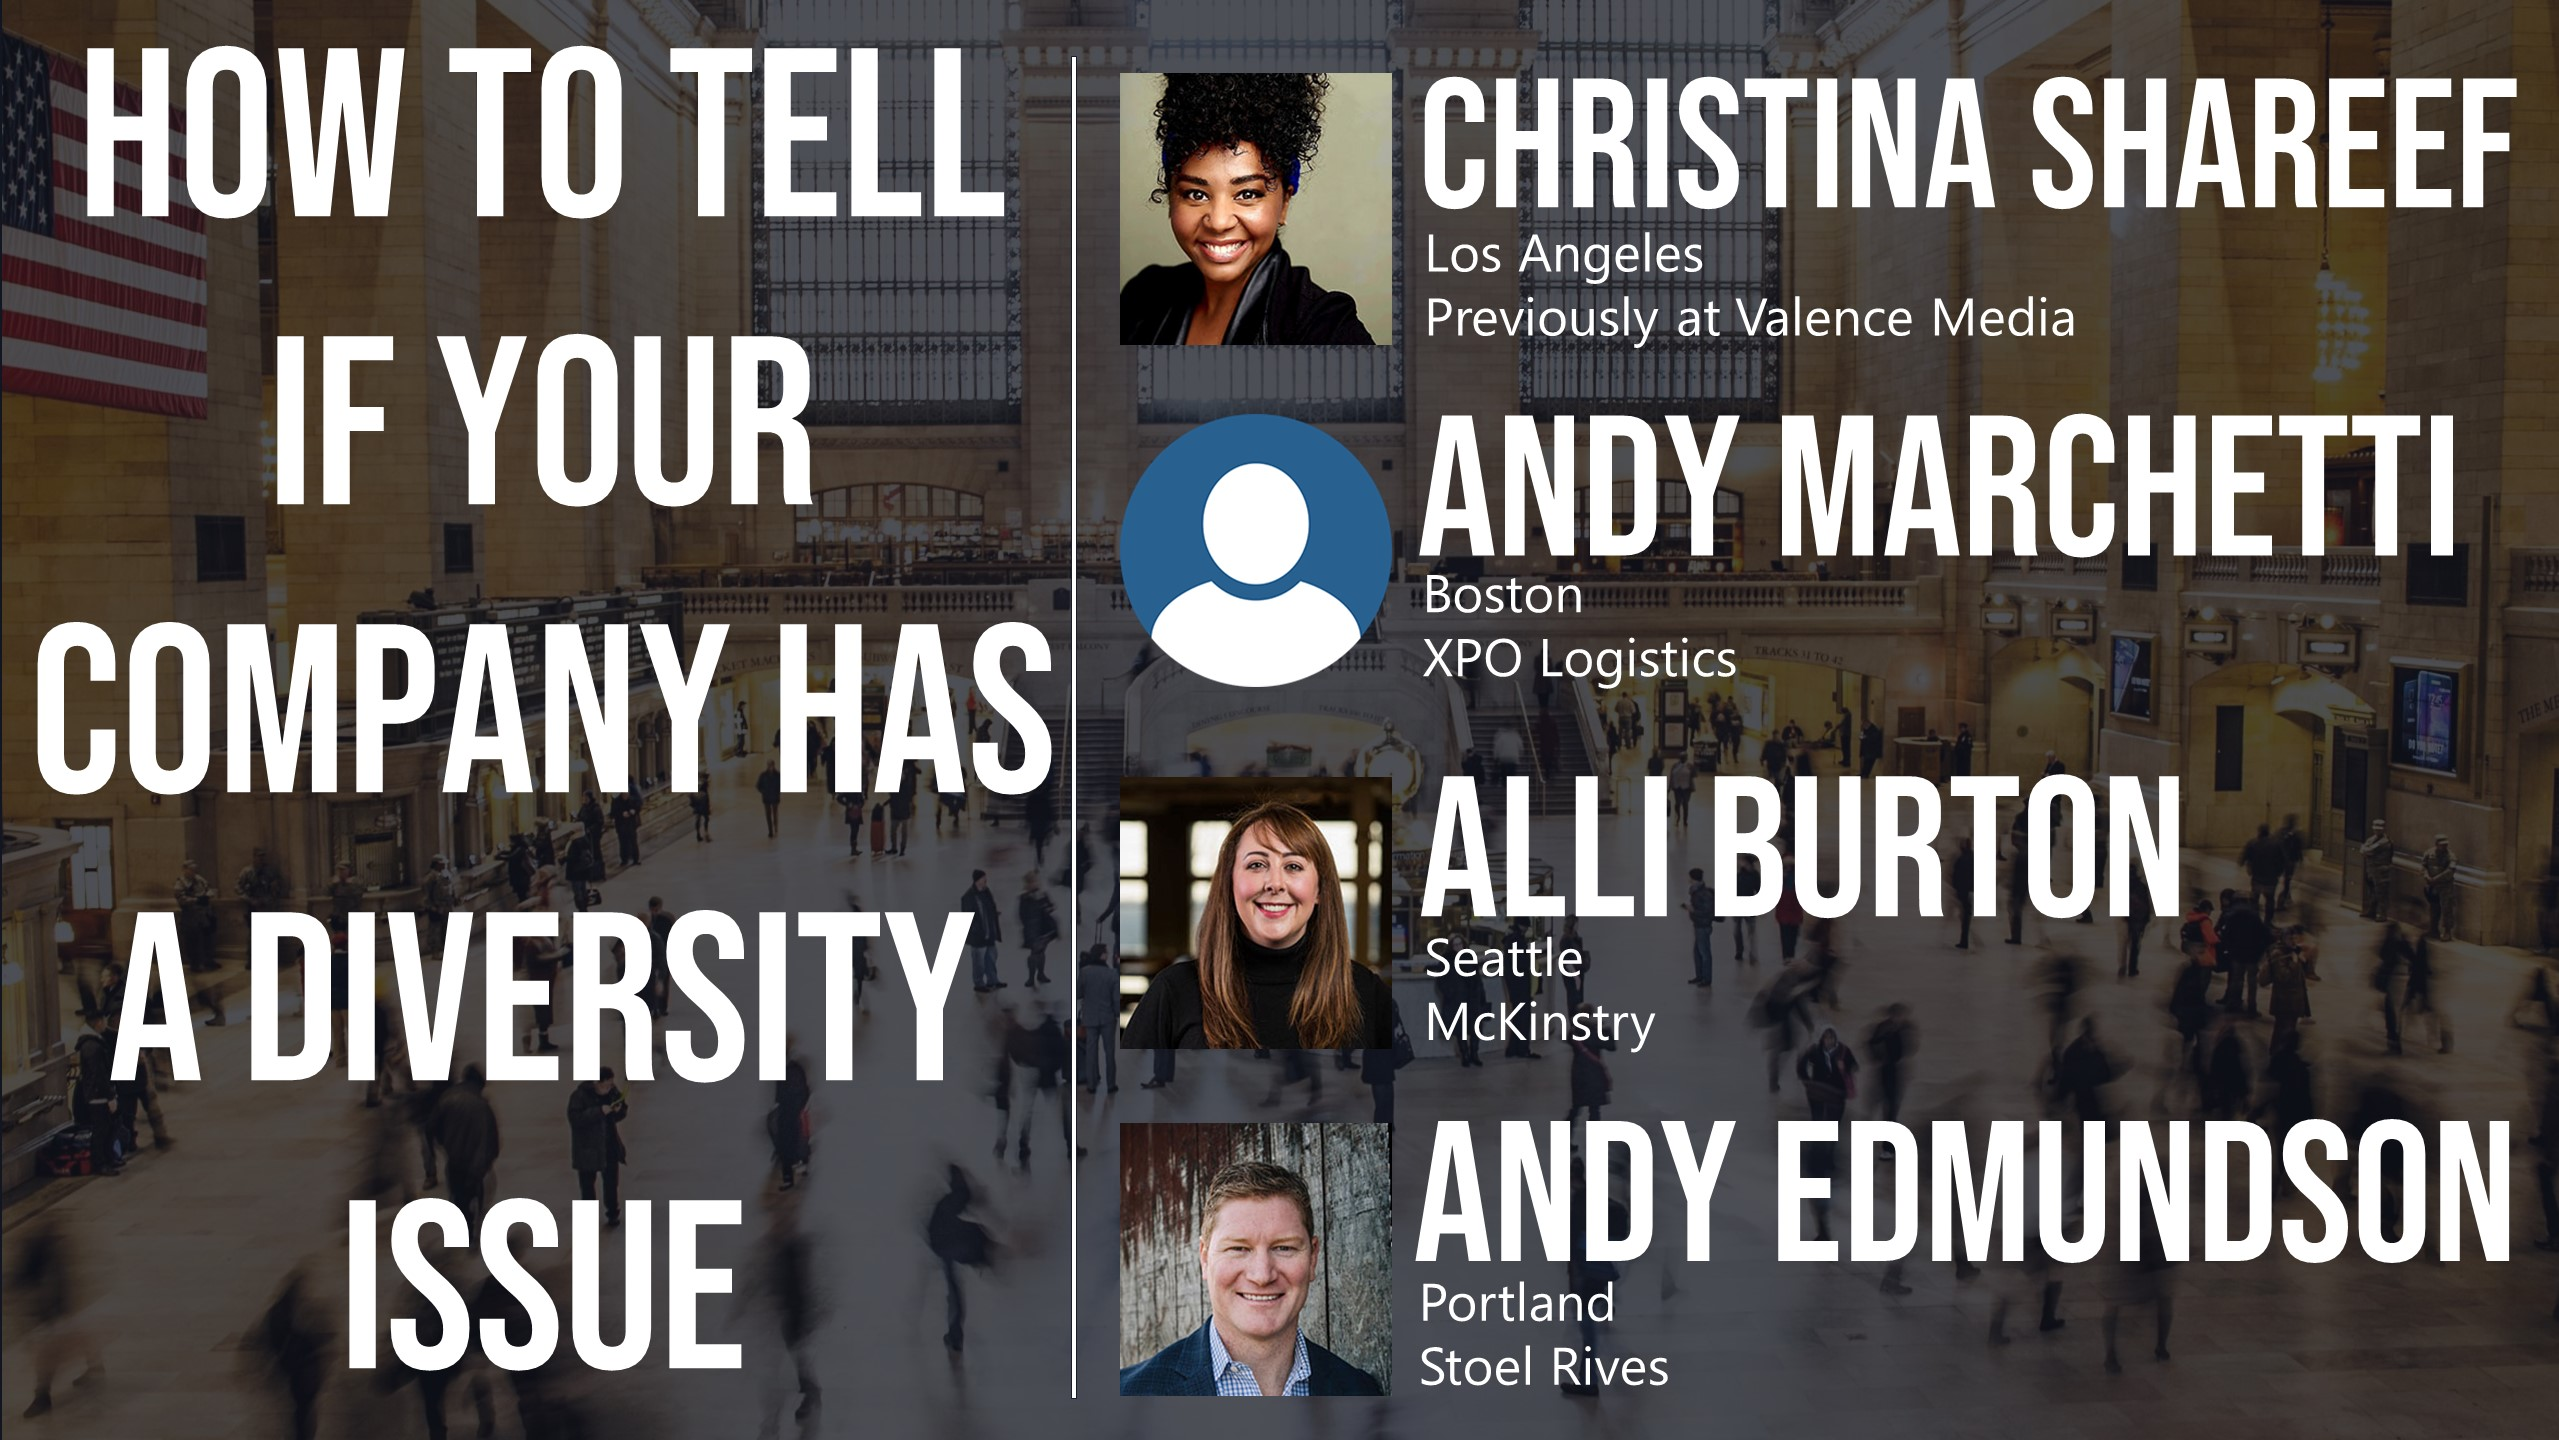 How to Tell if Your Company Has a Diversity Issue